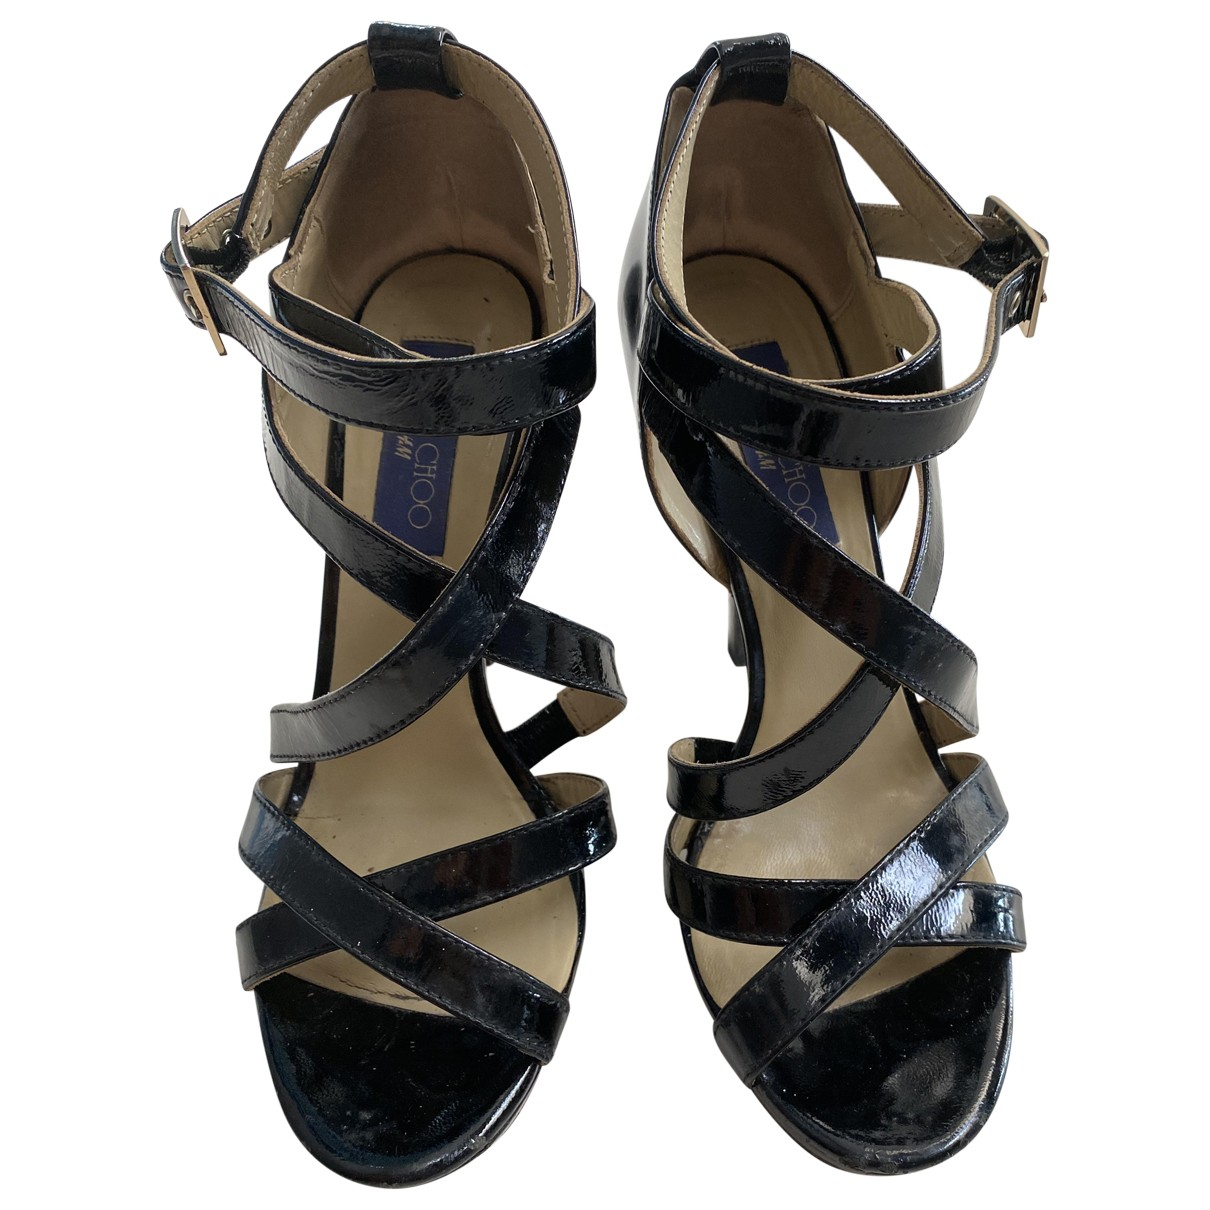 Jimmy Choo For H&m \N Black Patent leather Heels for Women 38 EU